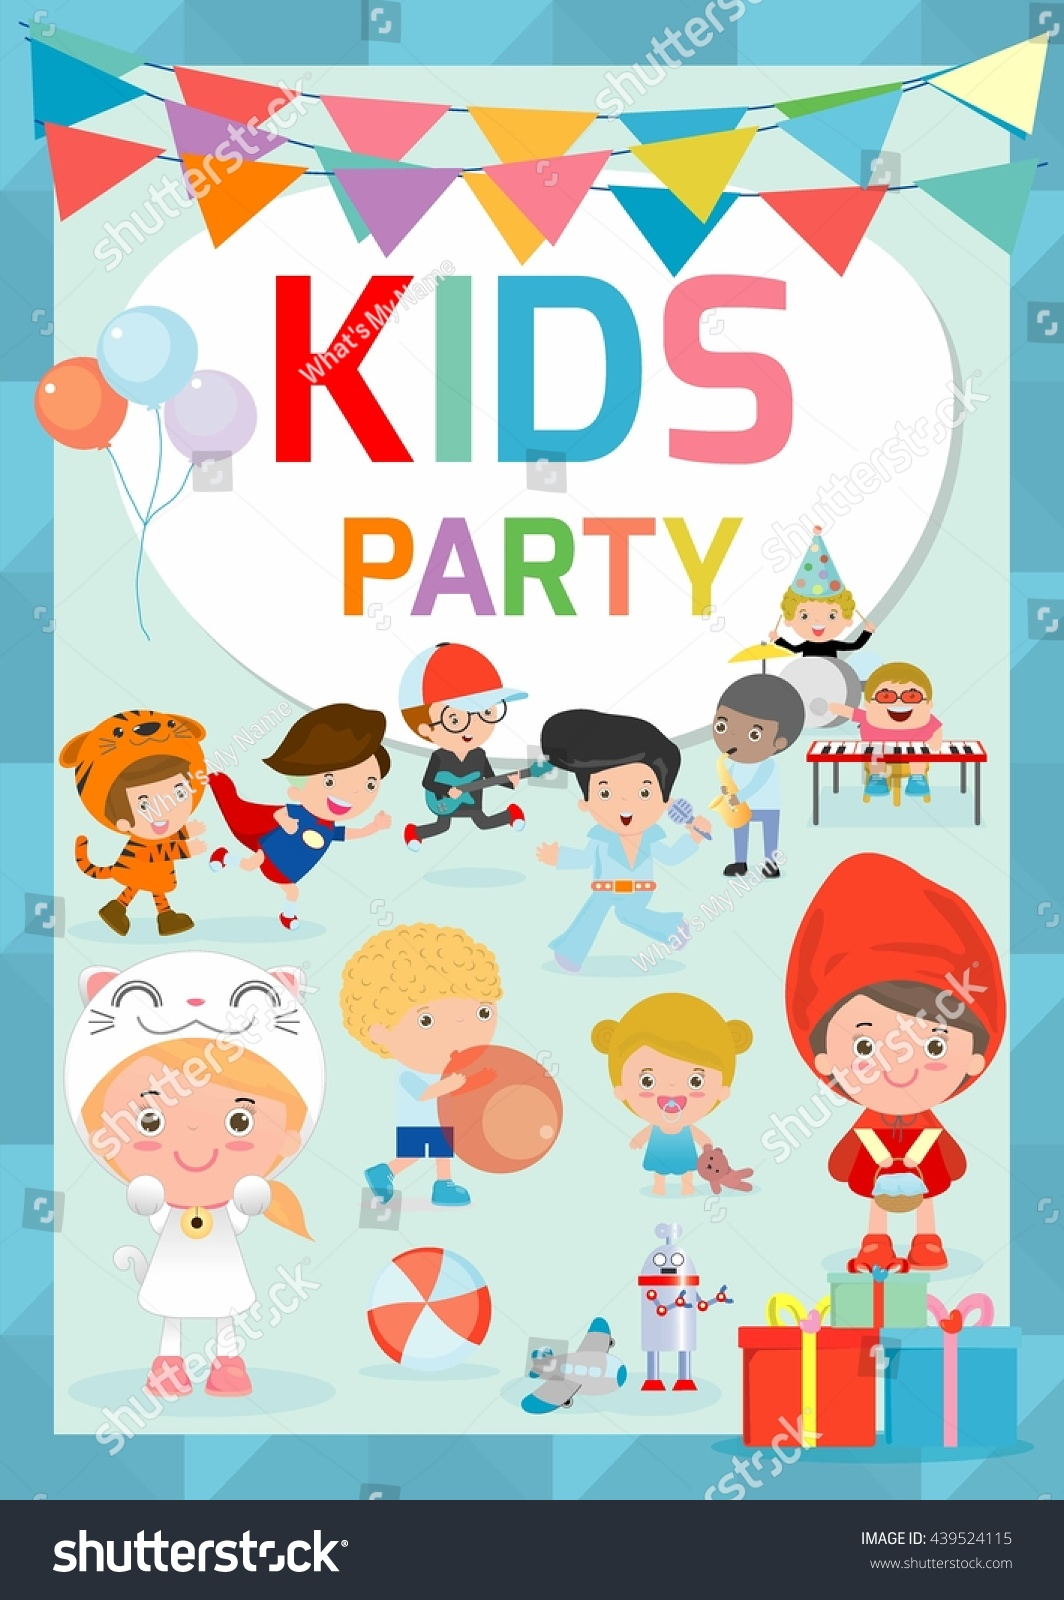 kids party design template children happy stock vector 439524115 kids party design template children happy party celebration flyer banner or pamphlet template